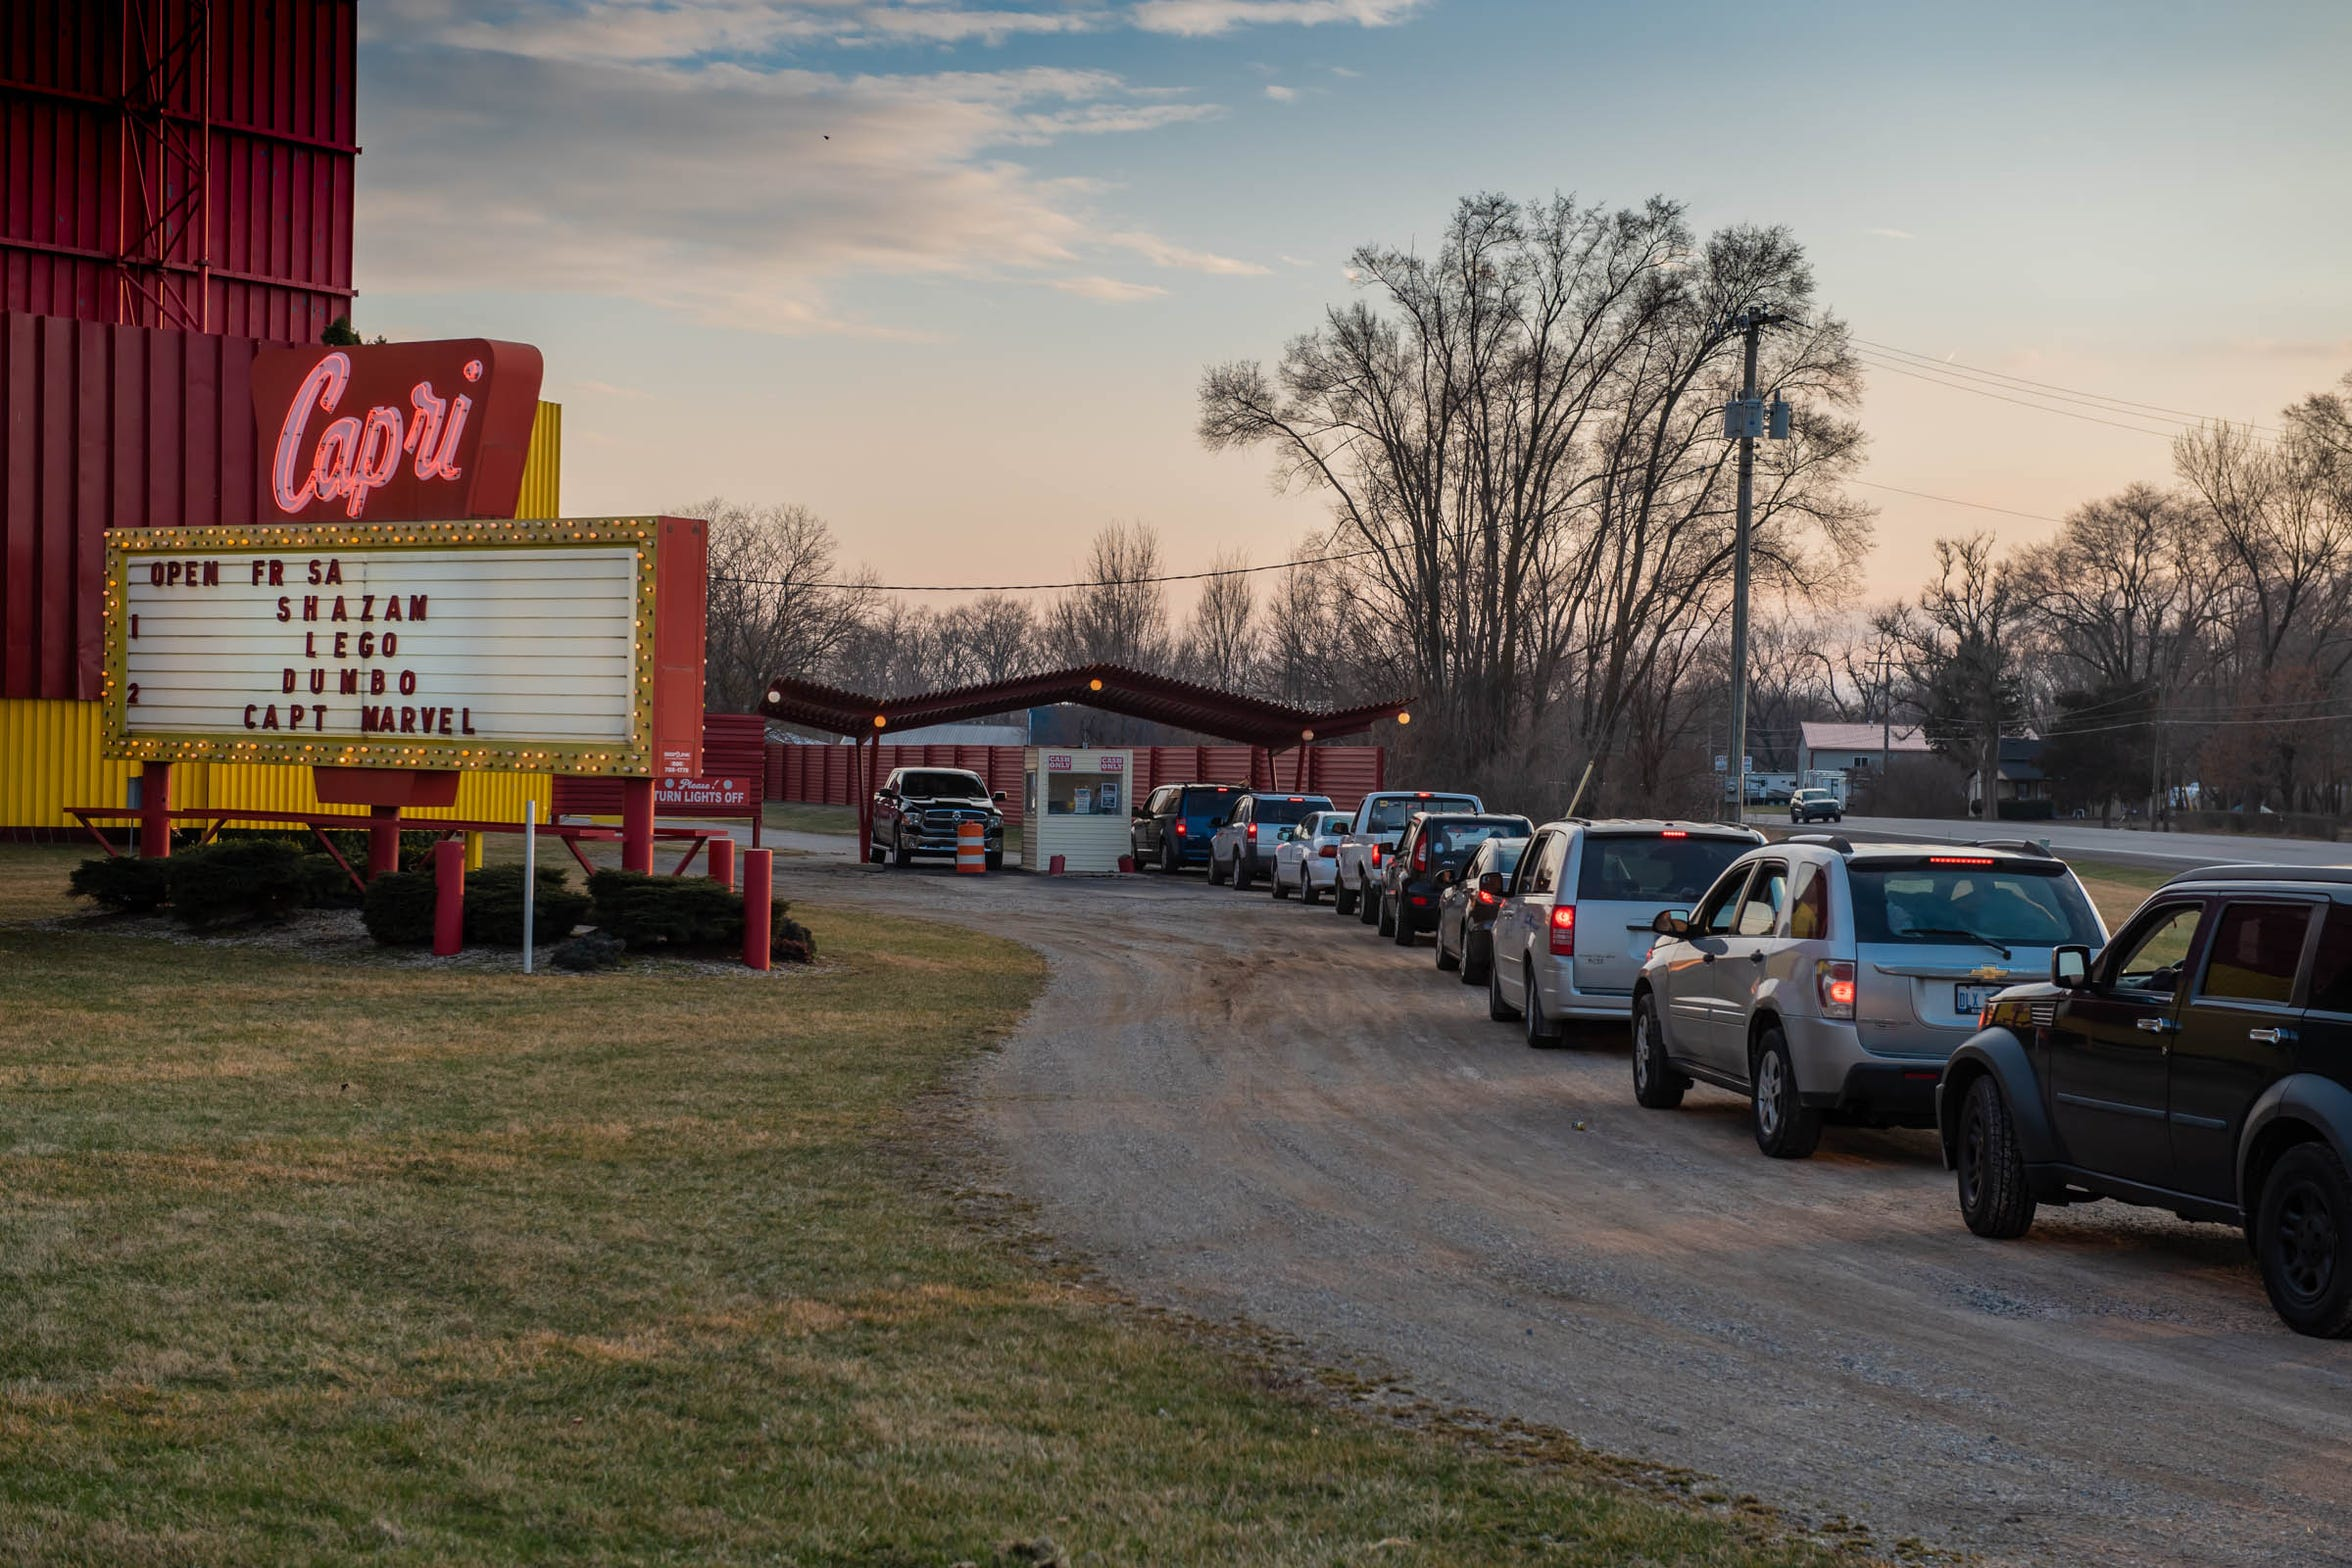 Moviegoers line up at the Capri Drive-In in Coldwater on Friday, April 5, 2019.